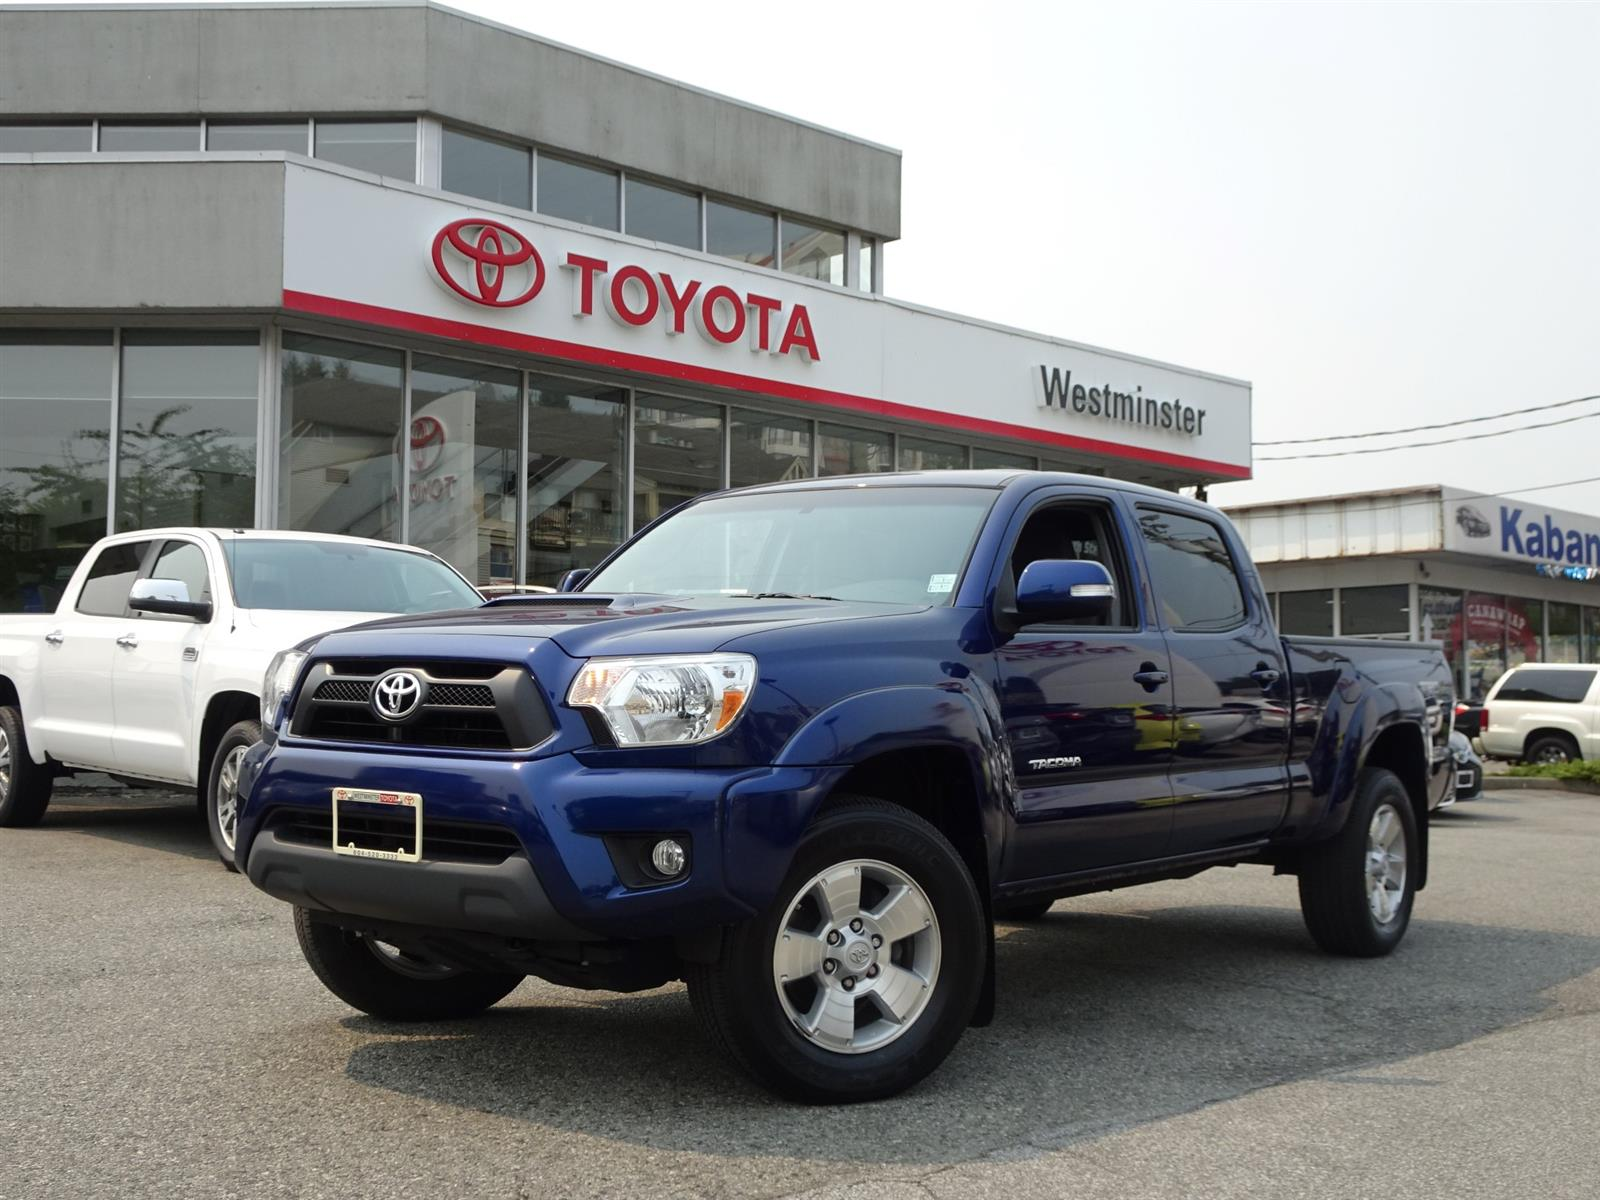 on auctions speed cab trucks xtra listing for sale tacoma toyota bat